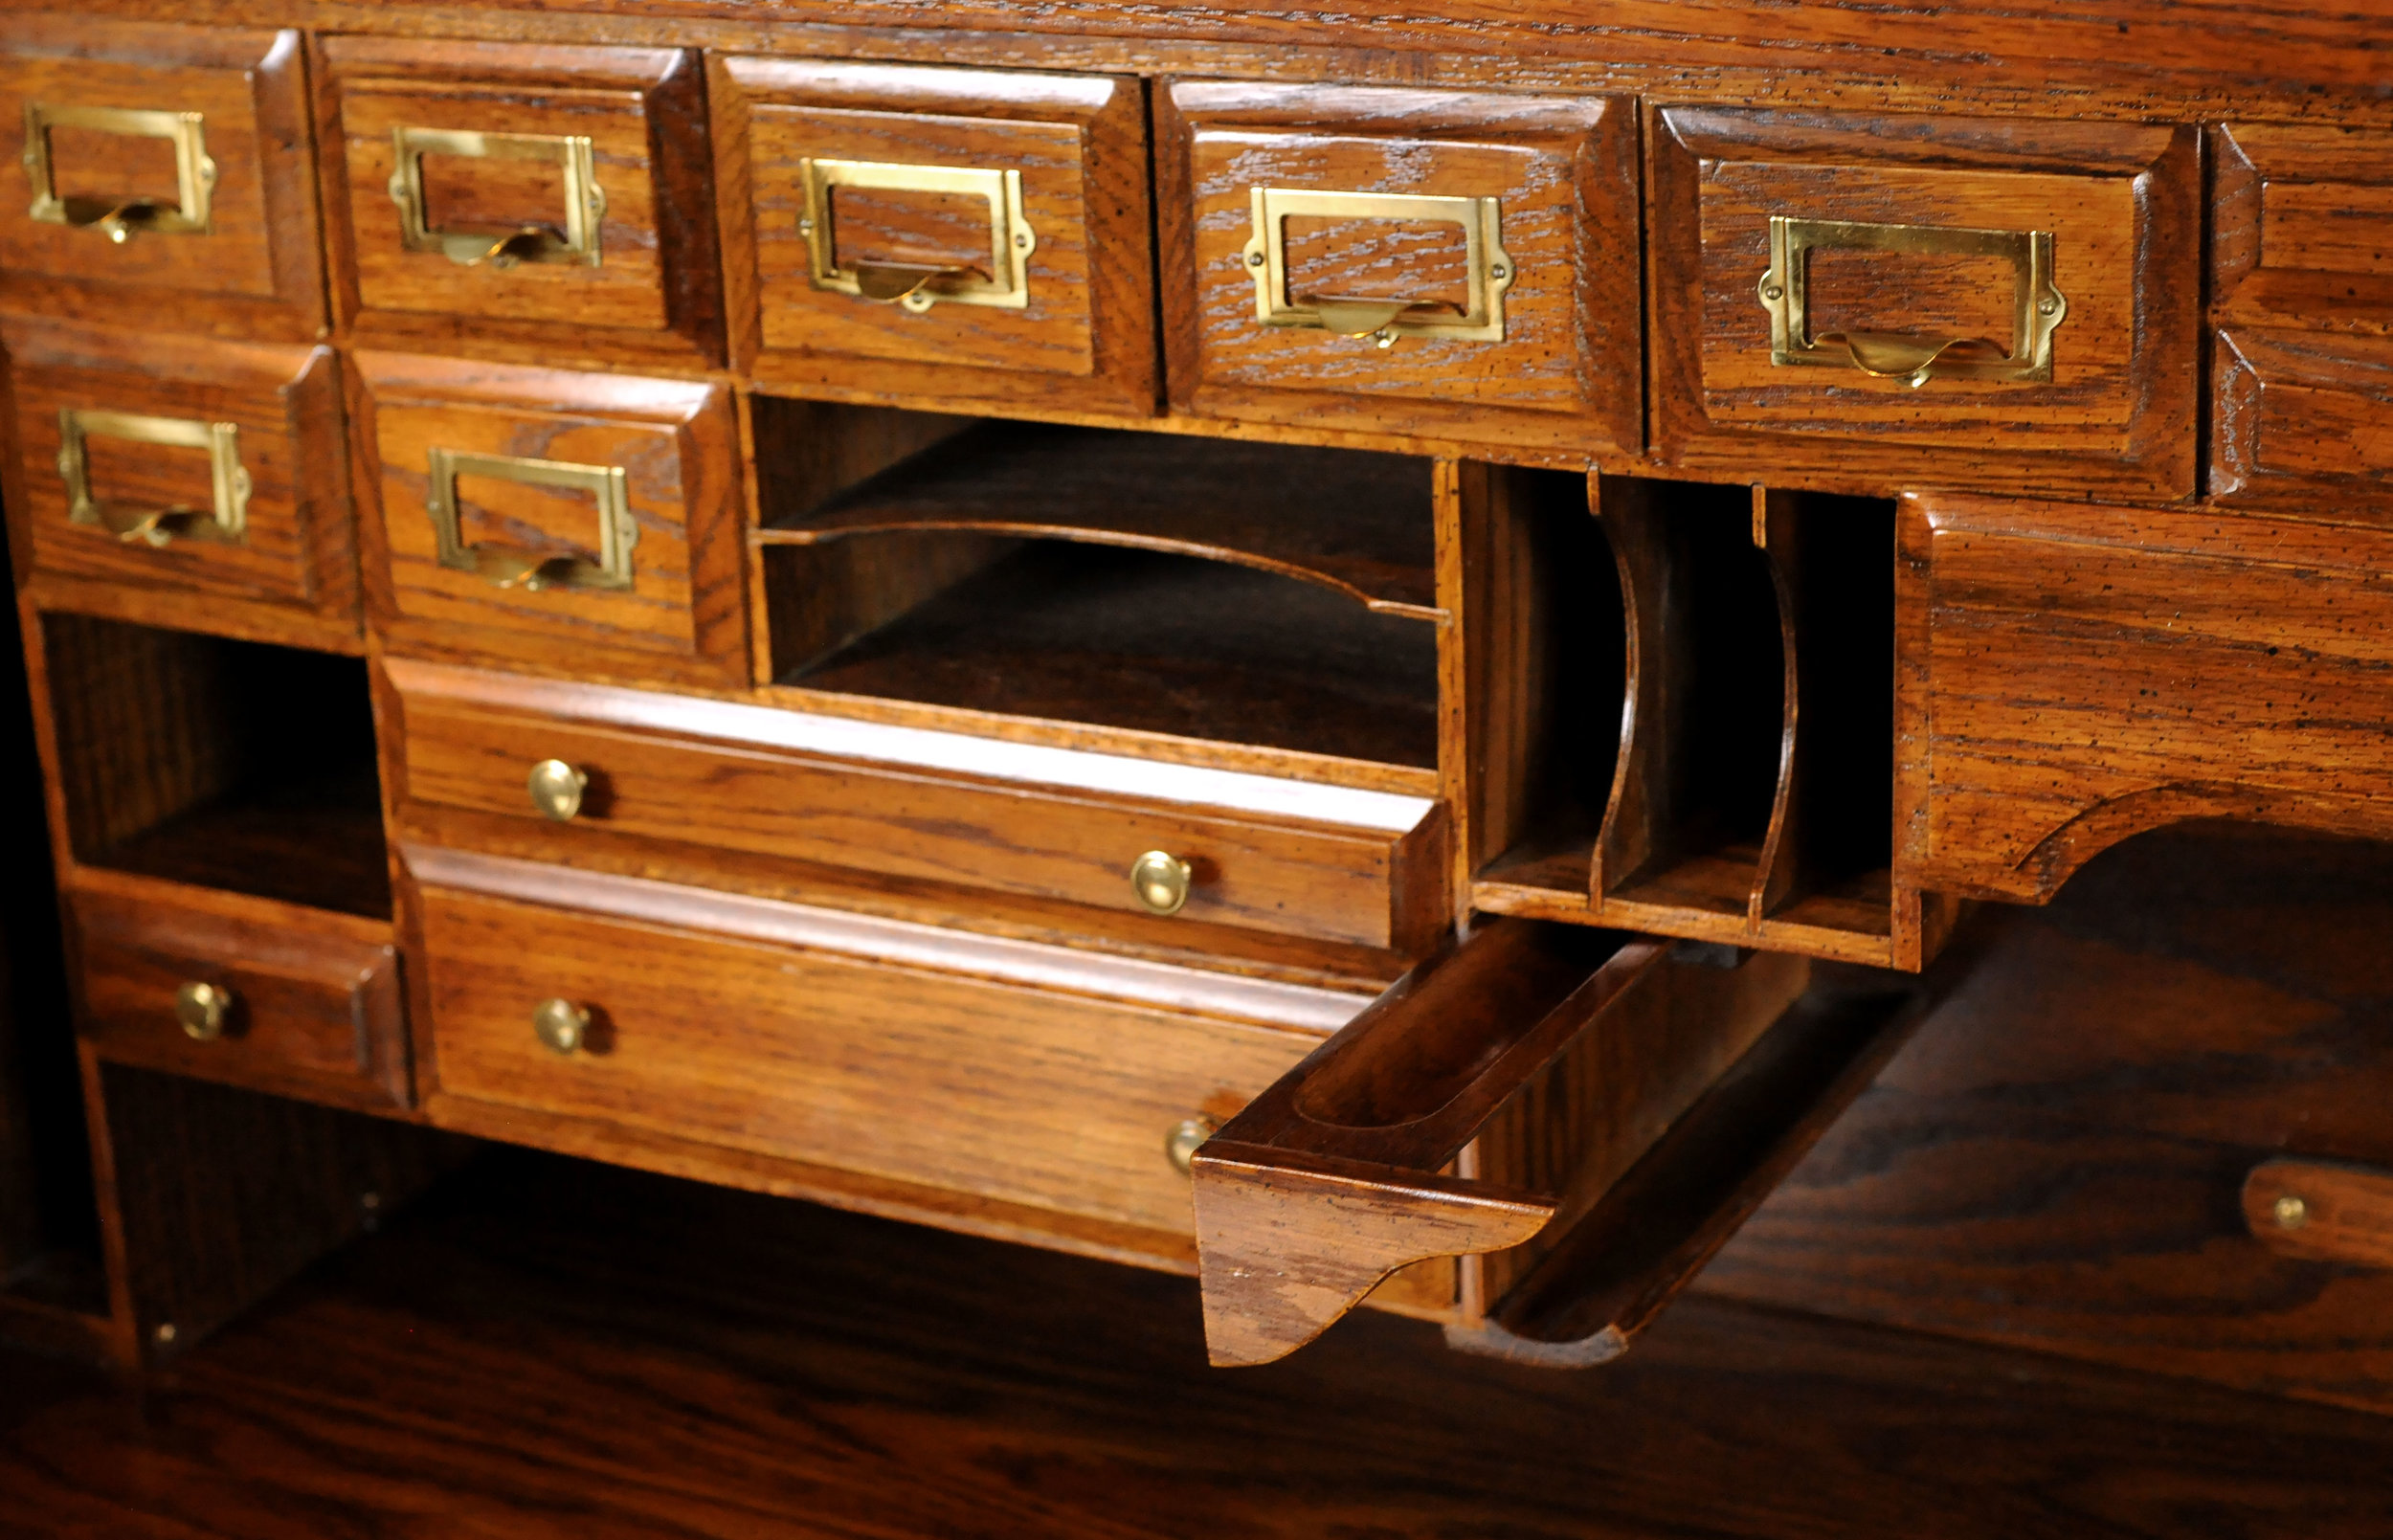 47117-rolltop-desk-secret-compartment.jpg